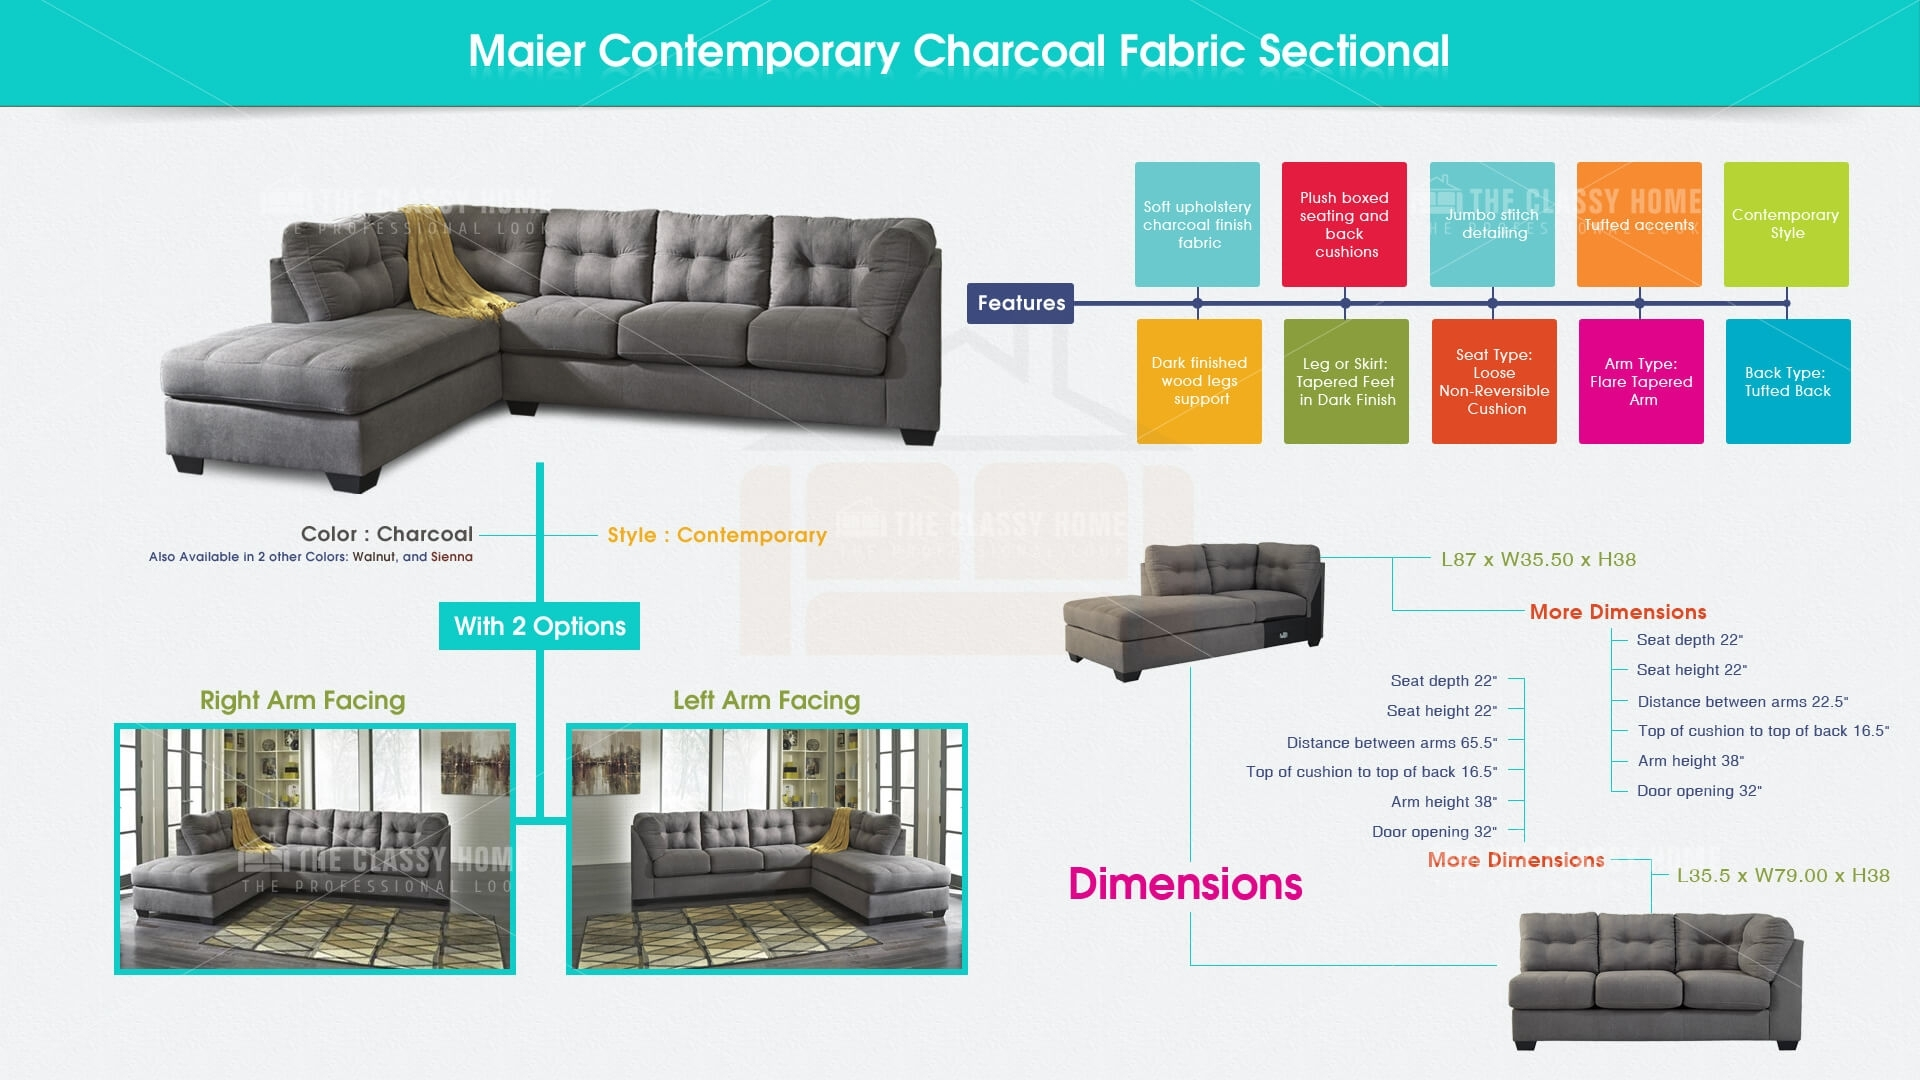 Ashley Furniture Maier Charcoal Raf Chaise Sectional | The Classy Home With Regard To Lucy Dark Grey 2 Piece Sectionals With Laf Chaise (Image 5 of 25)